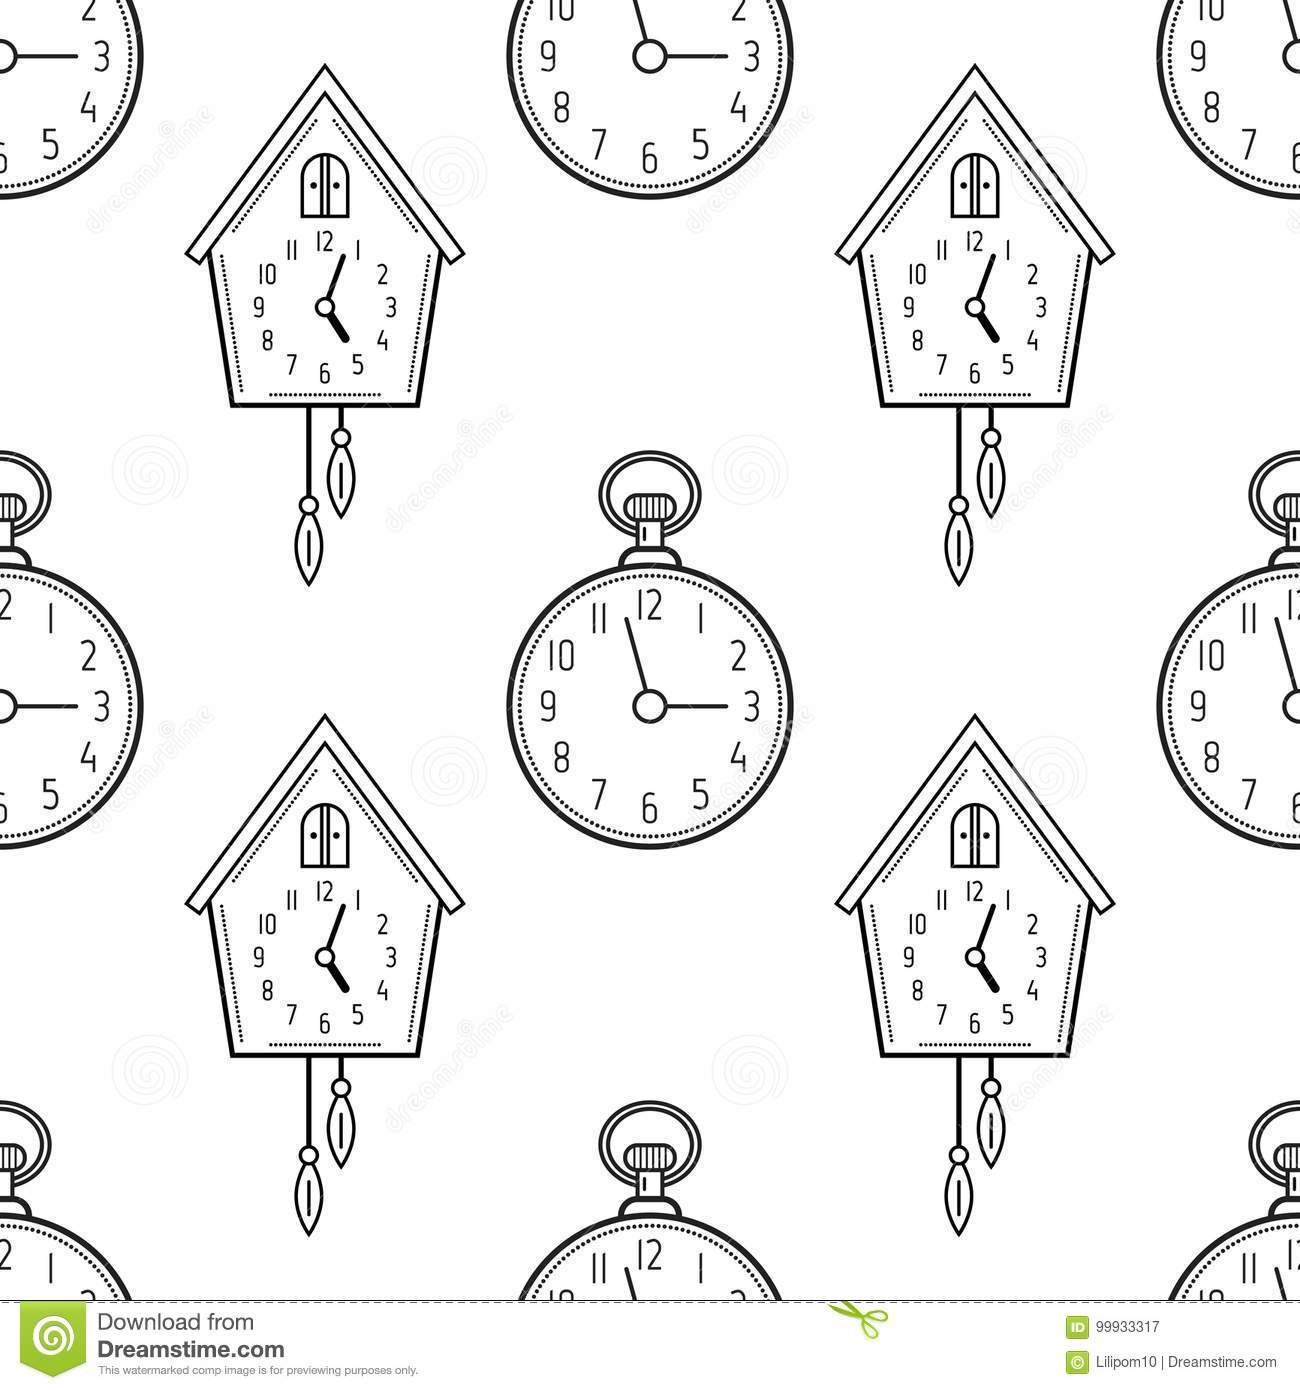 Pocket Watch And Cuckoo Clock Black White Seamless Pattern For Coloring Books Pages Vector Illustration